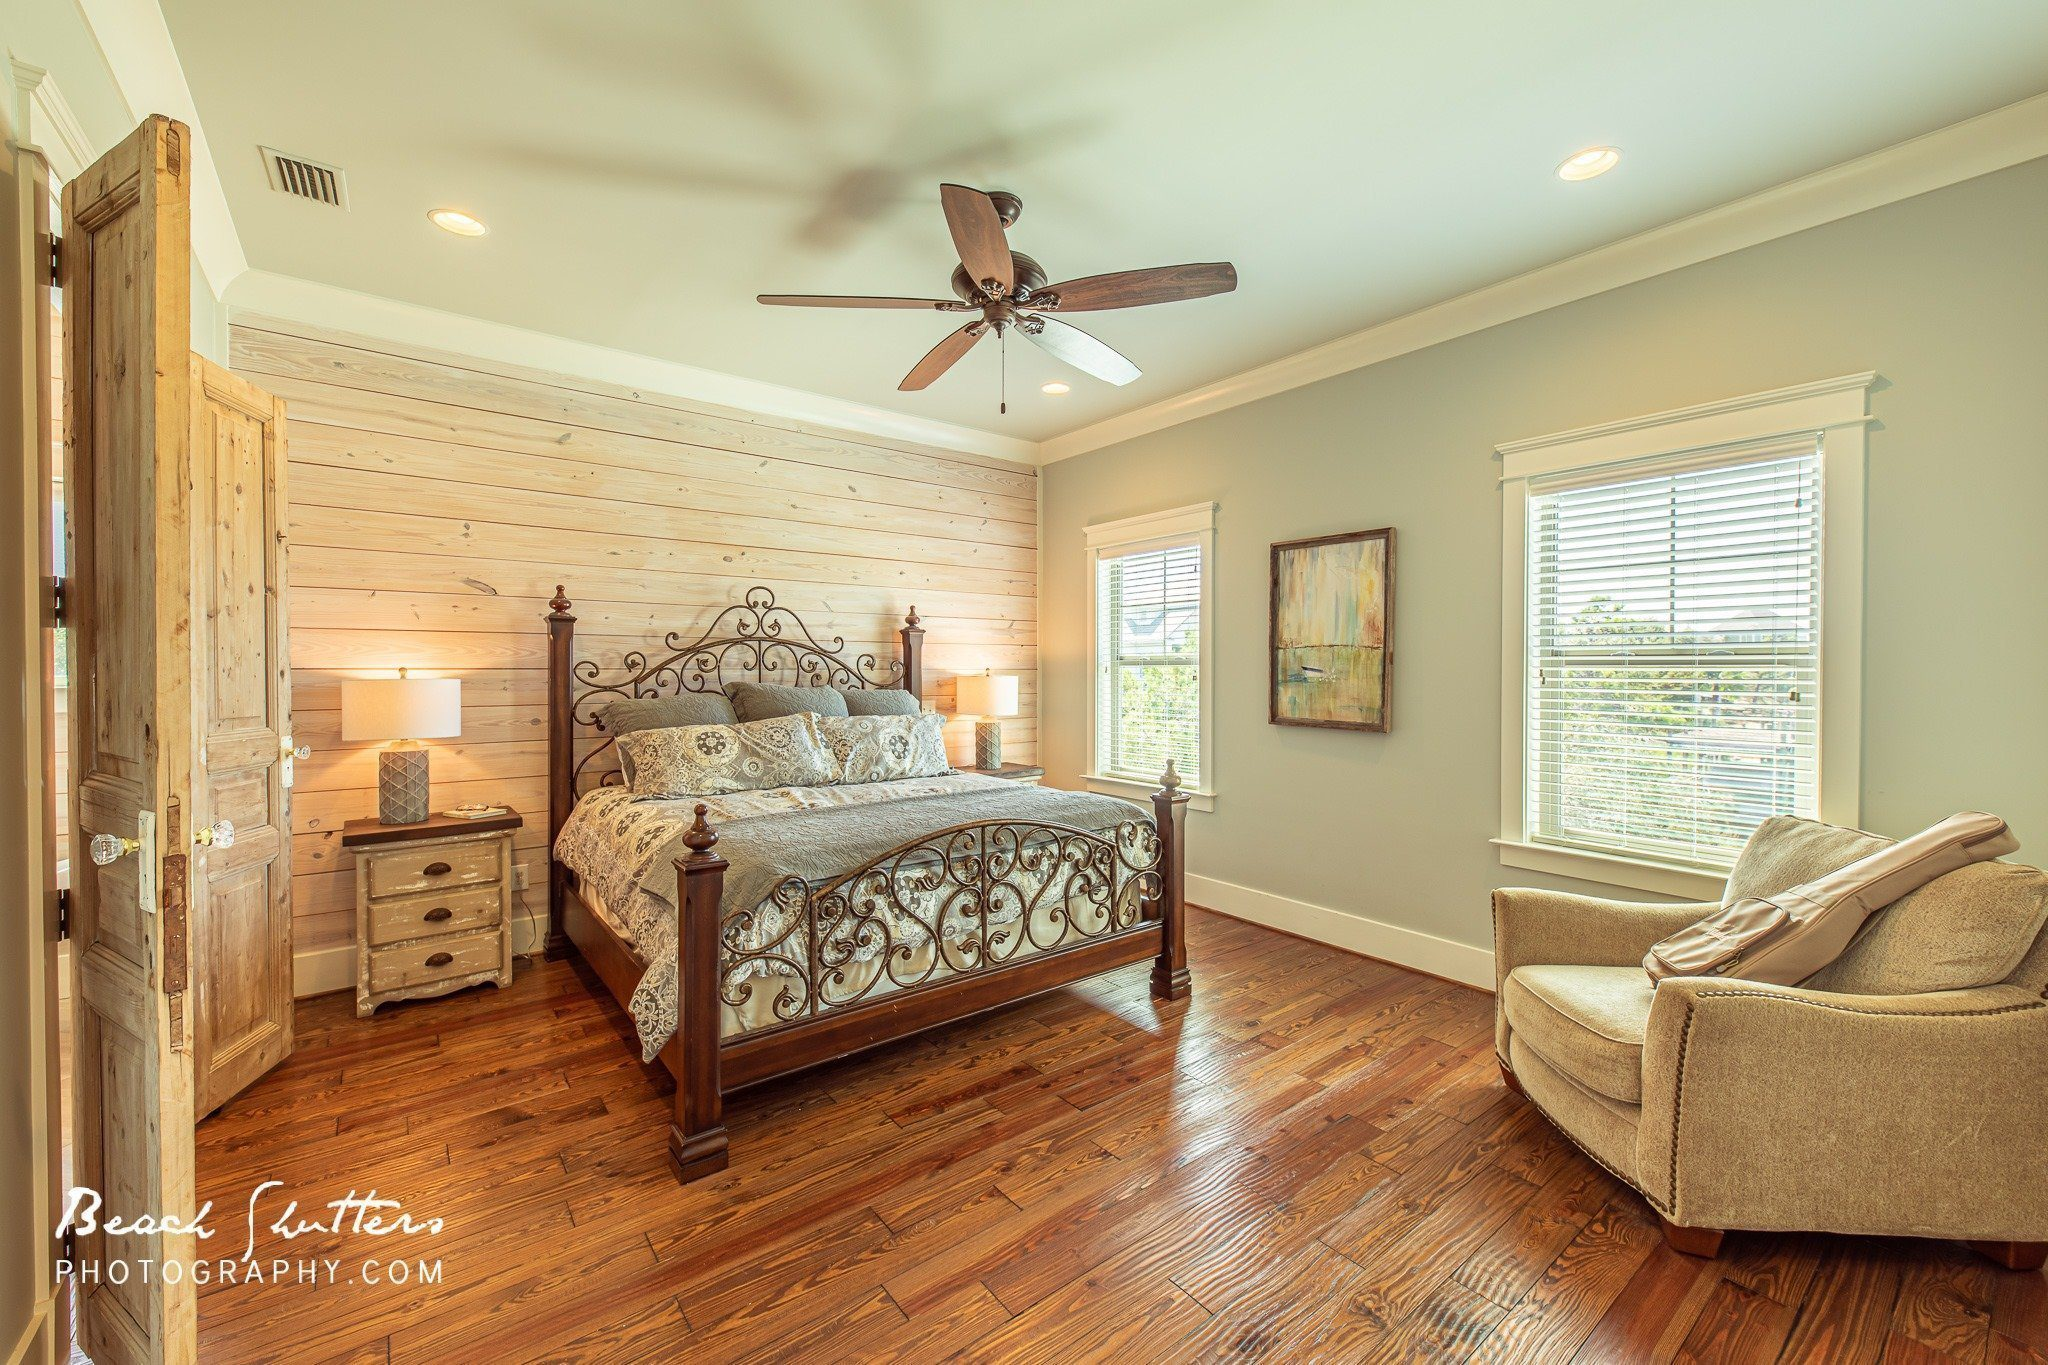 HDR real estate photography